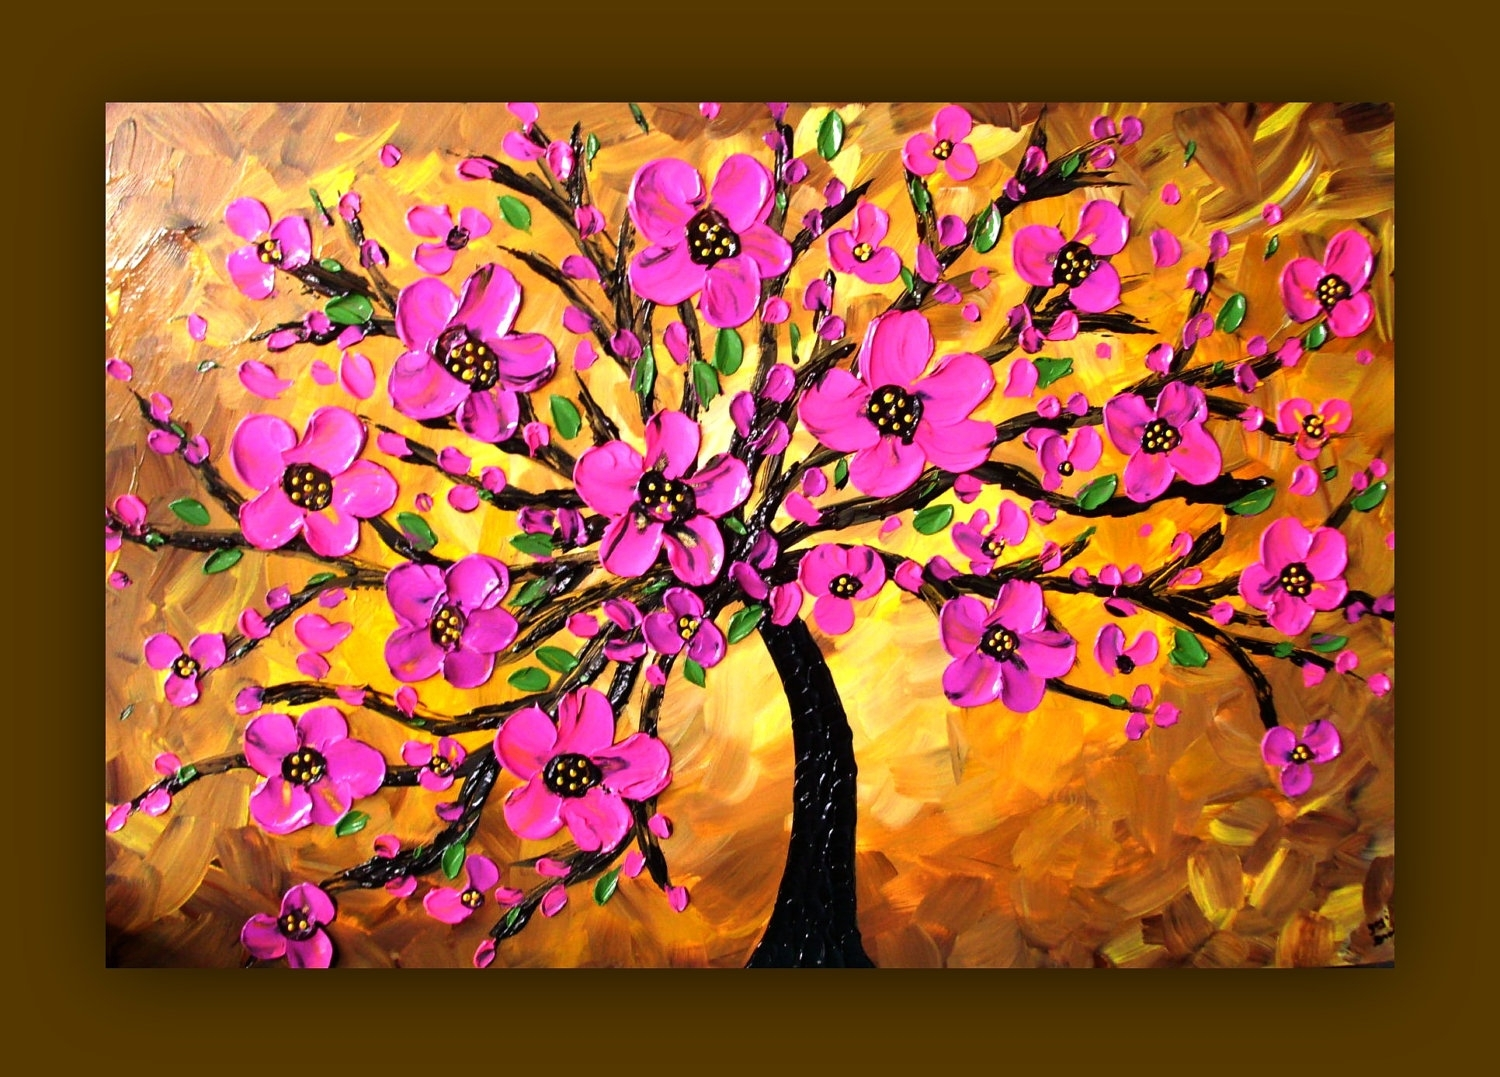 Pink Flower Painting, Pink Tree Painting, Textured Original Pertaining To Most Popular Port Elizabeth Canvas Wall Art (View 13 of 15)